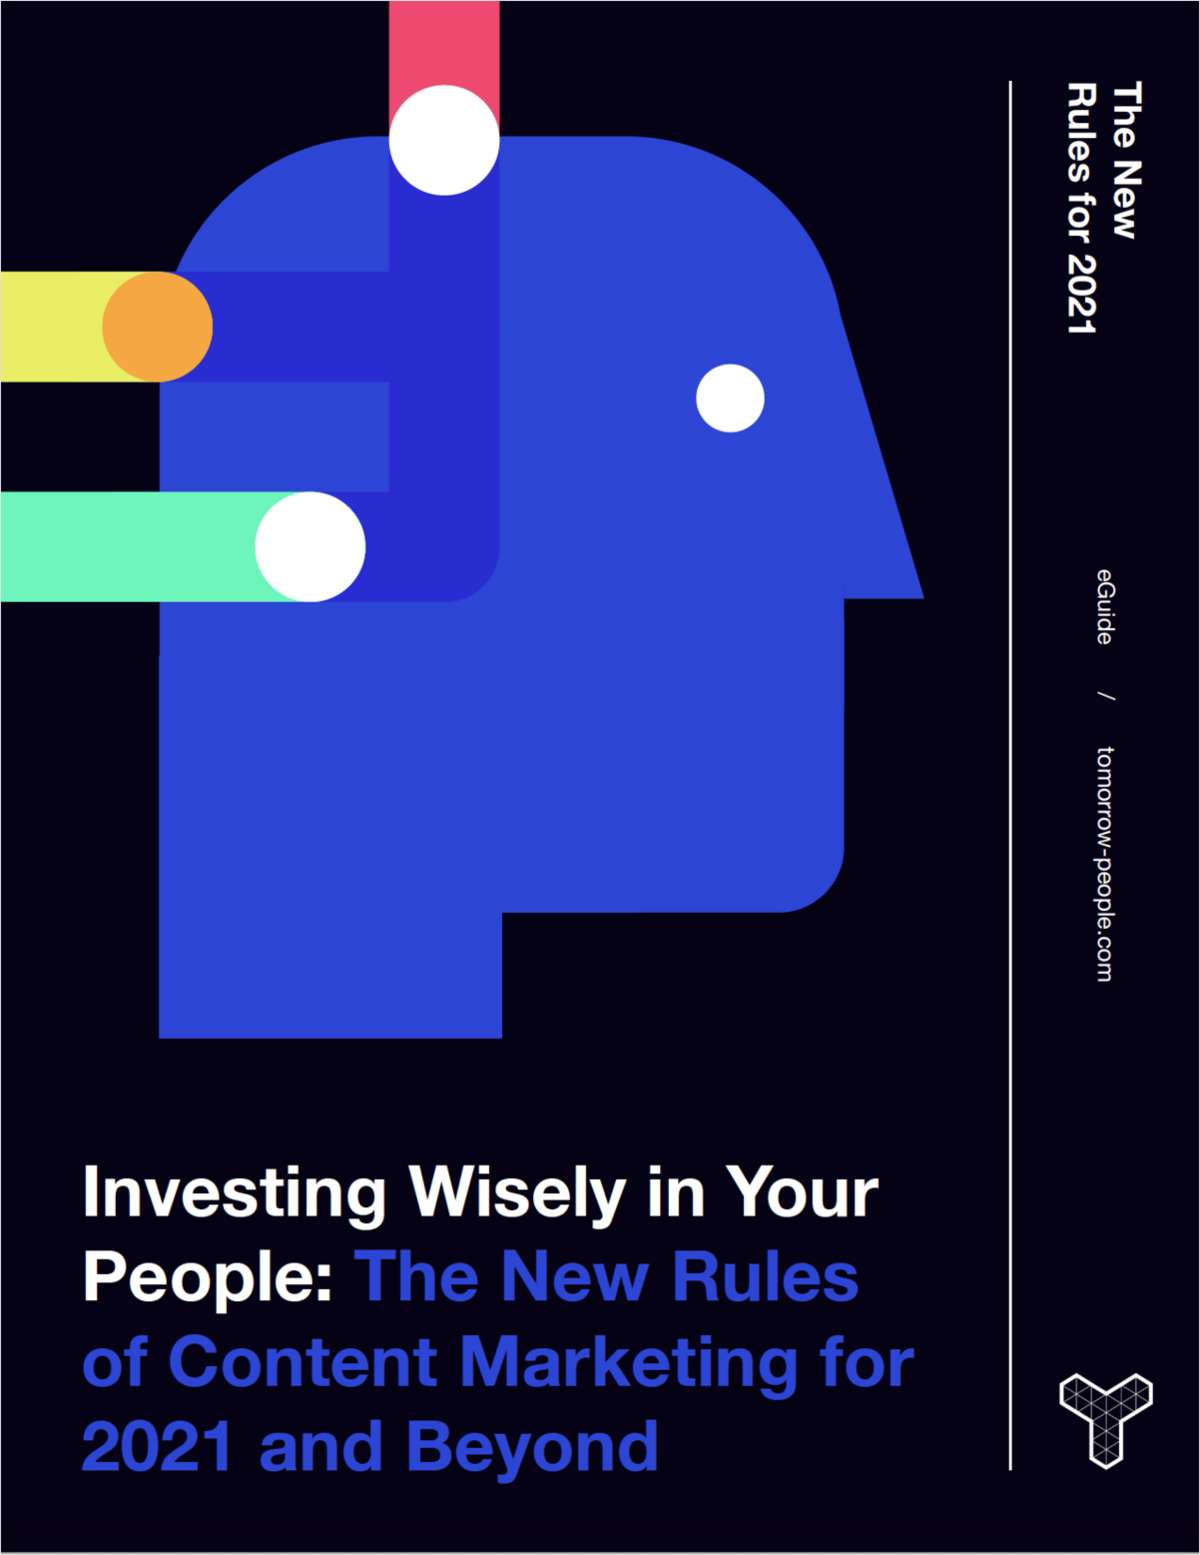 Investing Wisely in Your People - The New Rules of Content Marketing for 2021 and Beyond